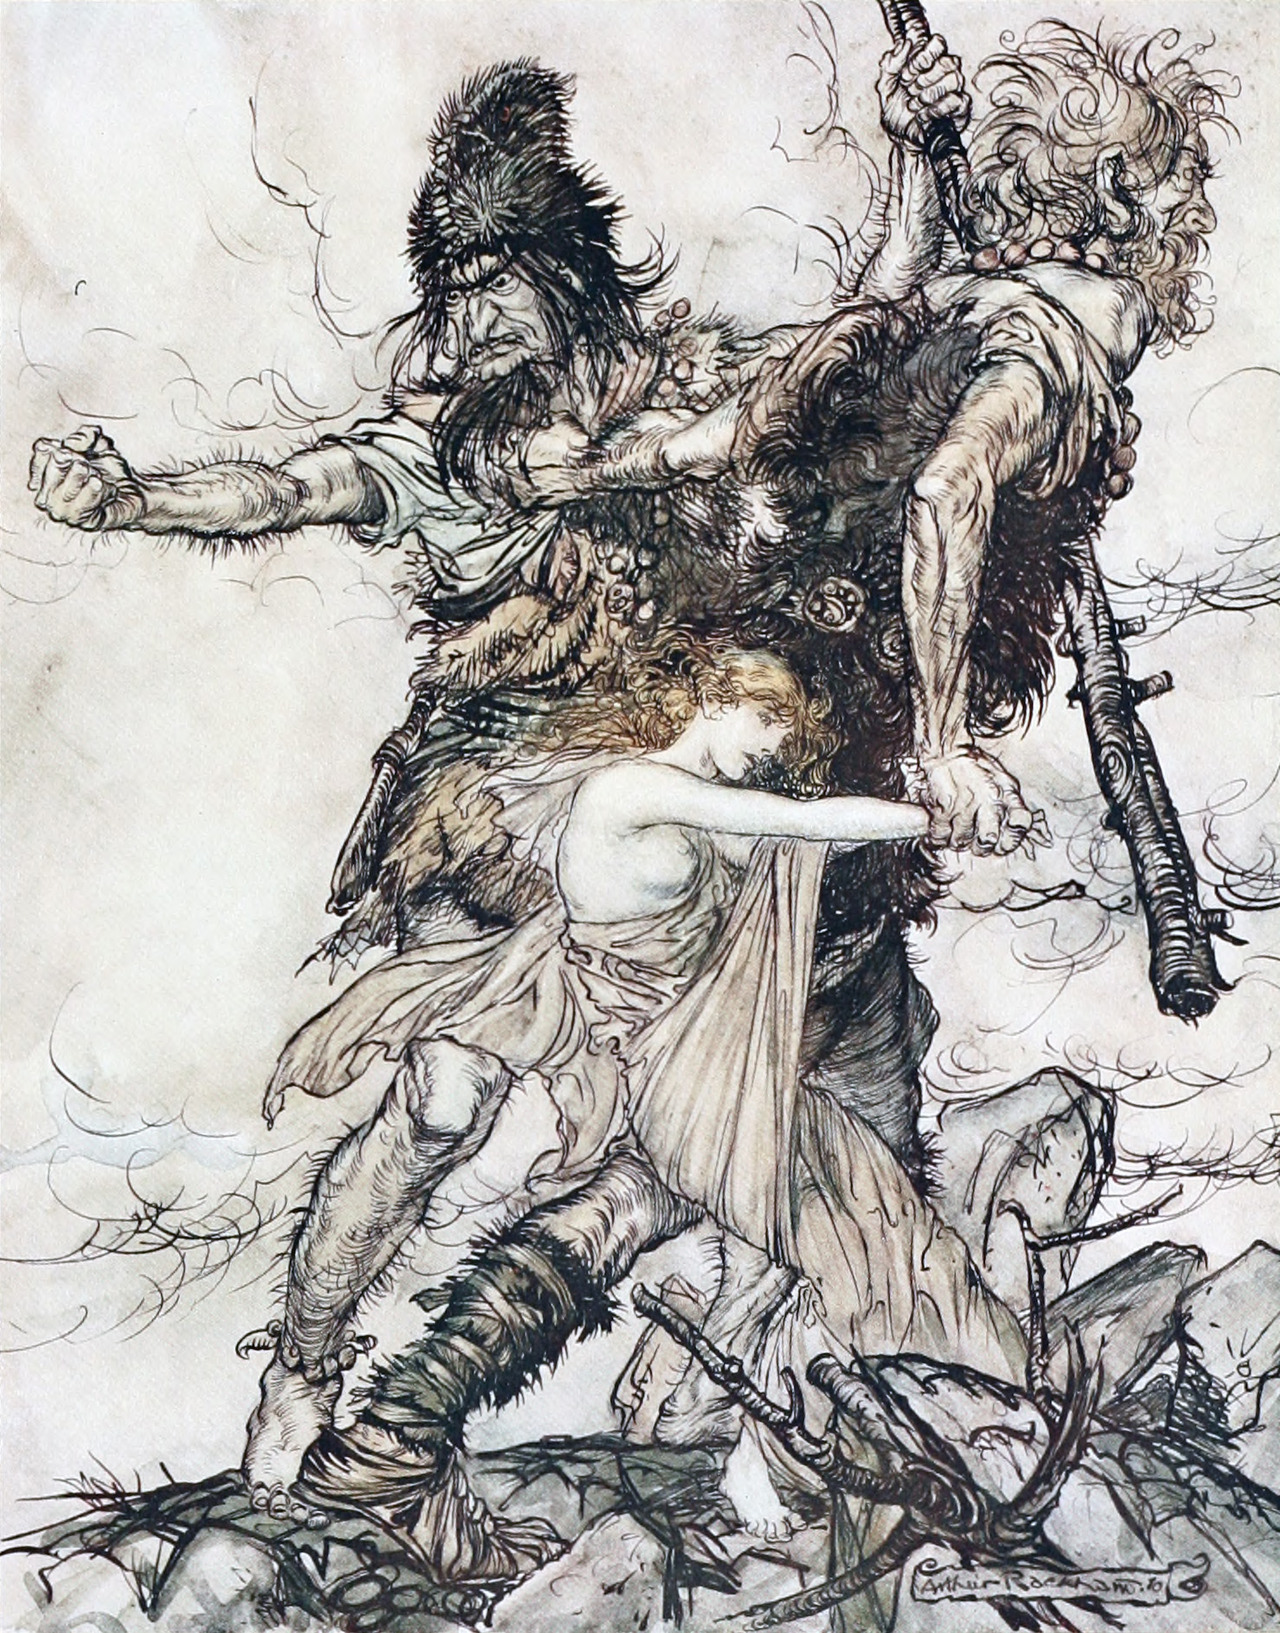 Rackham, Arthur (illus.) (1910) The Rhinegold & the Valkyrie, London: William Heinemann, p. 32.  Rackham seize Freya  Retrieved on 23 June 2011.